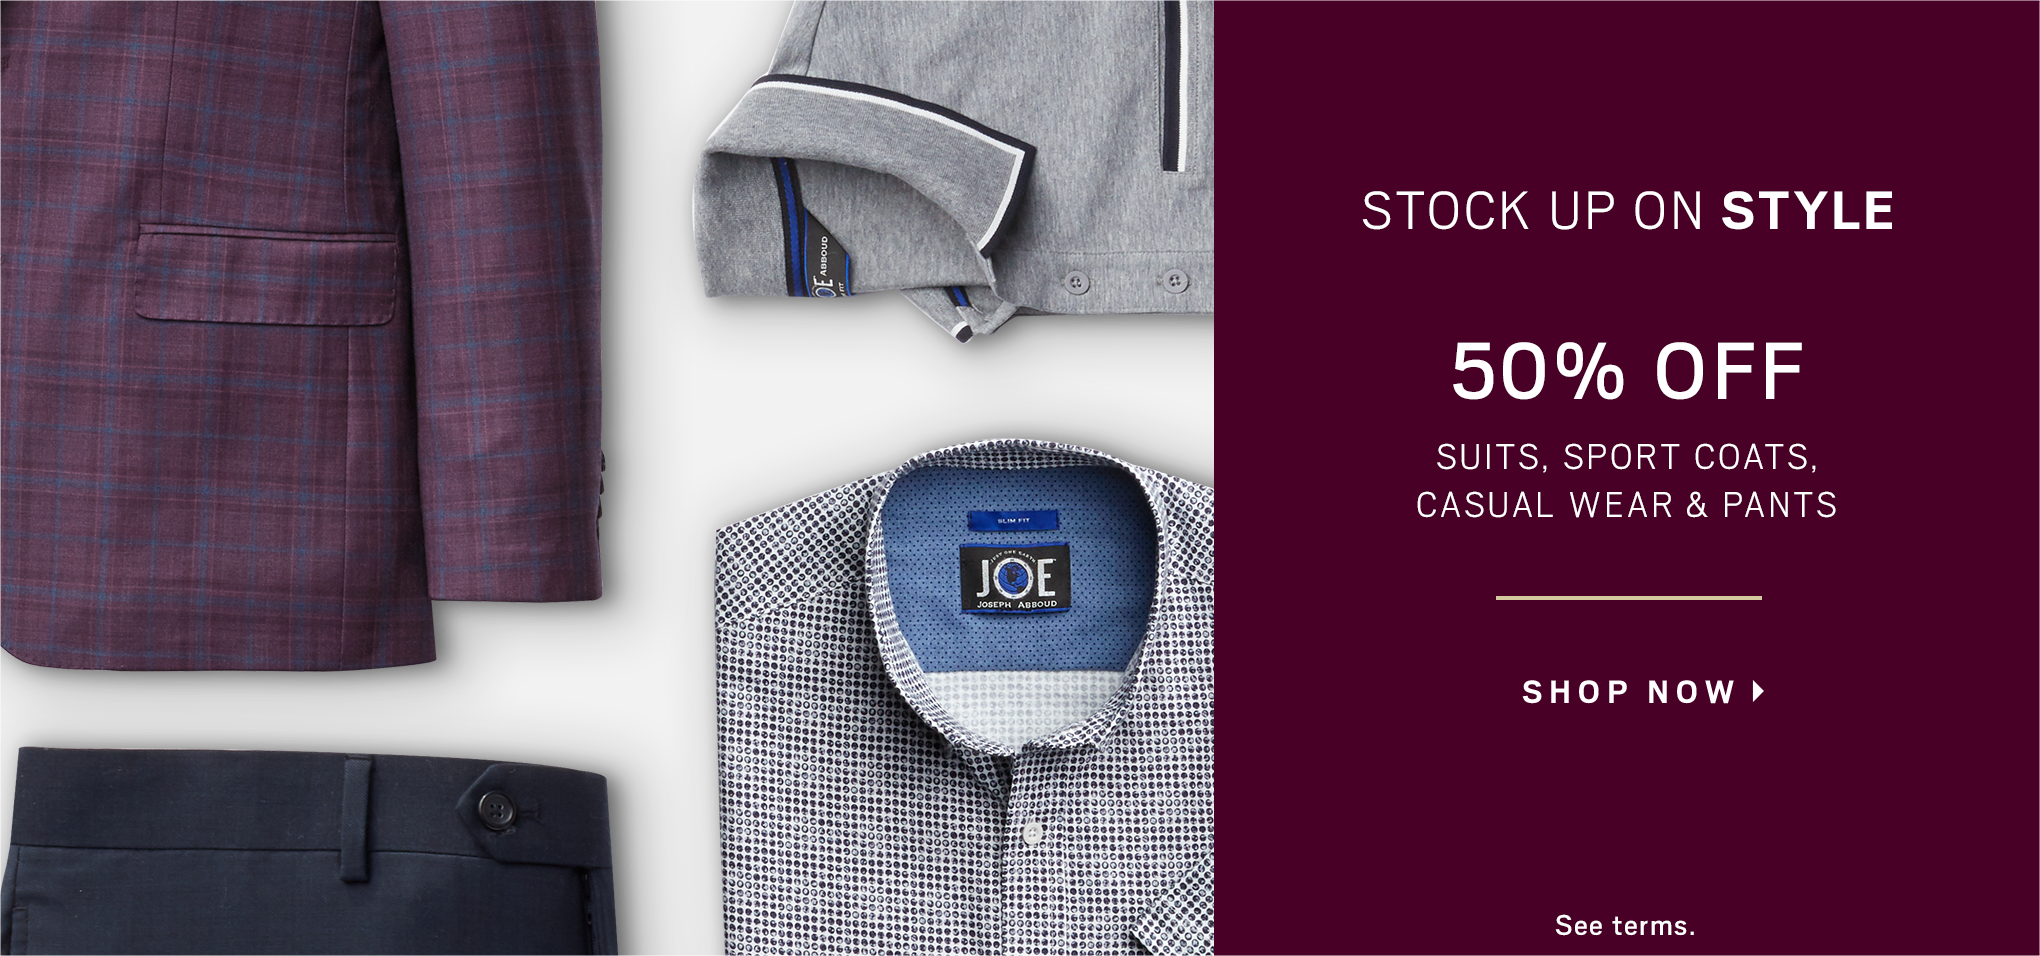 Shop Men's Clothing - Mens Suits, Dress Shirts & Sportcoats